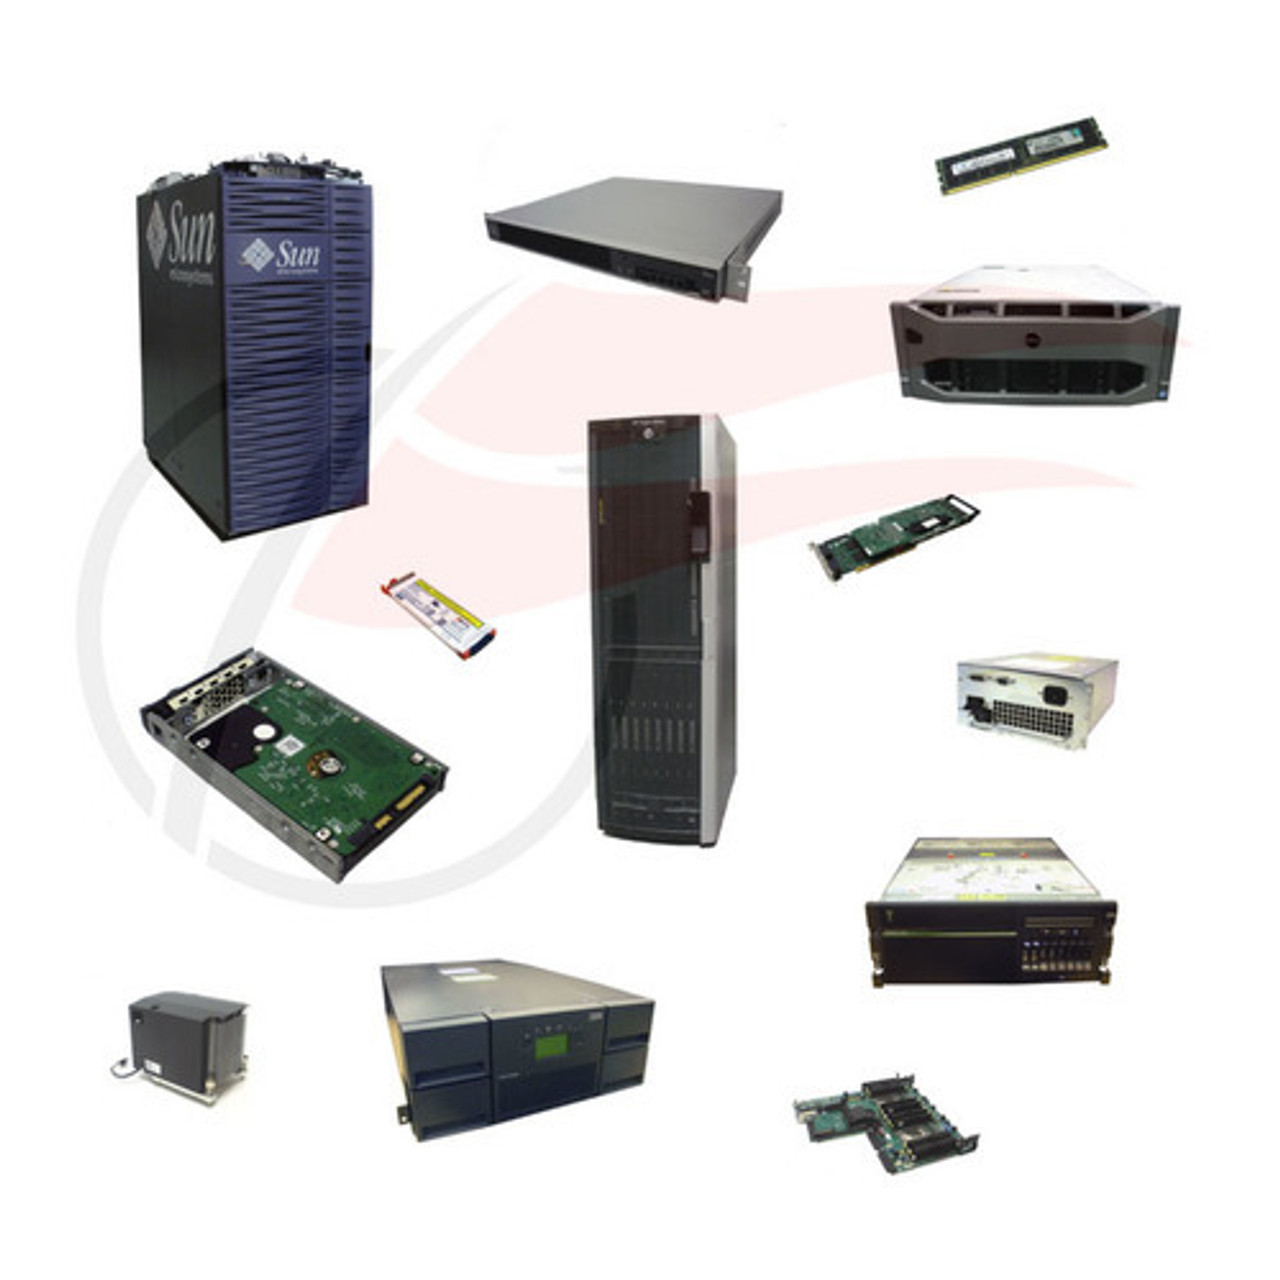 IBM POWER Systems / pSeries